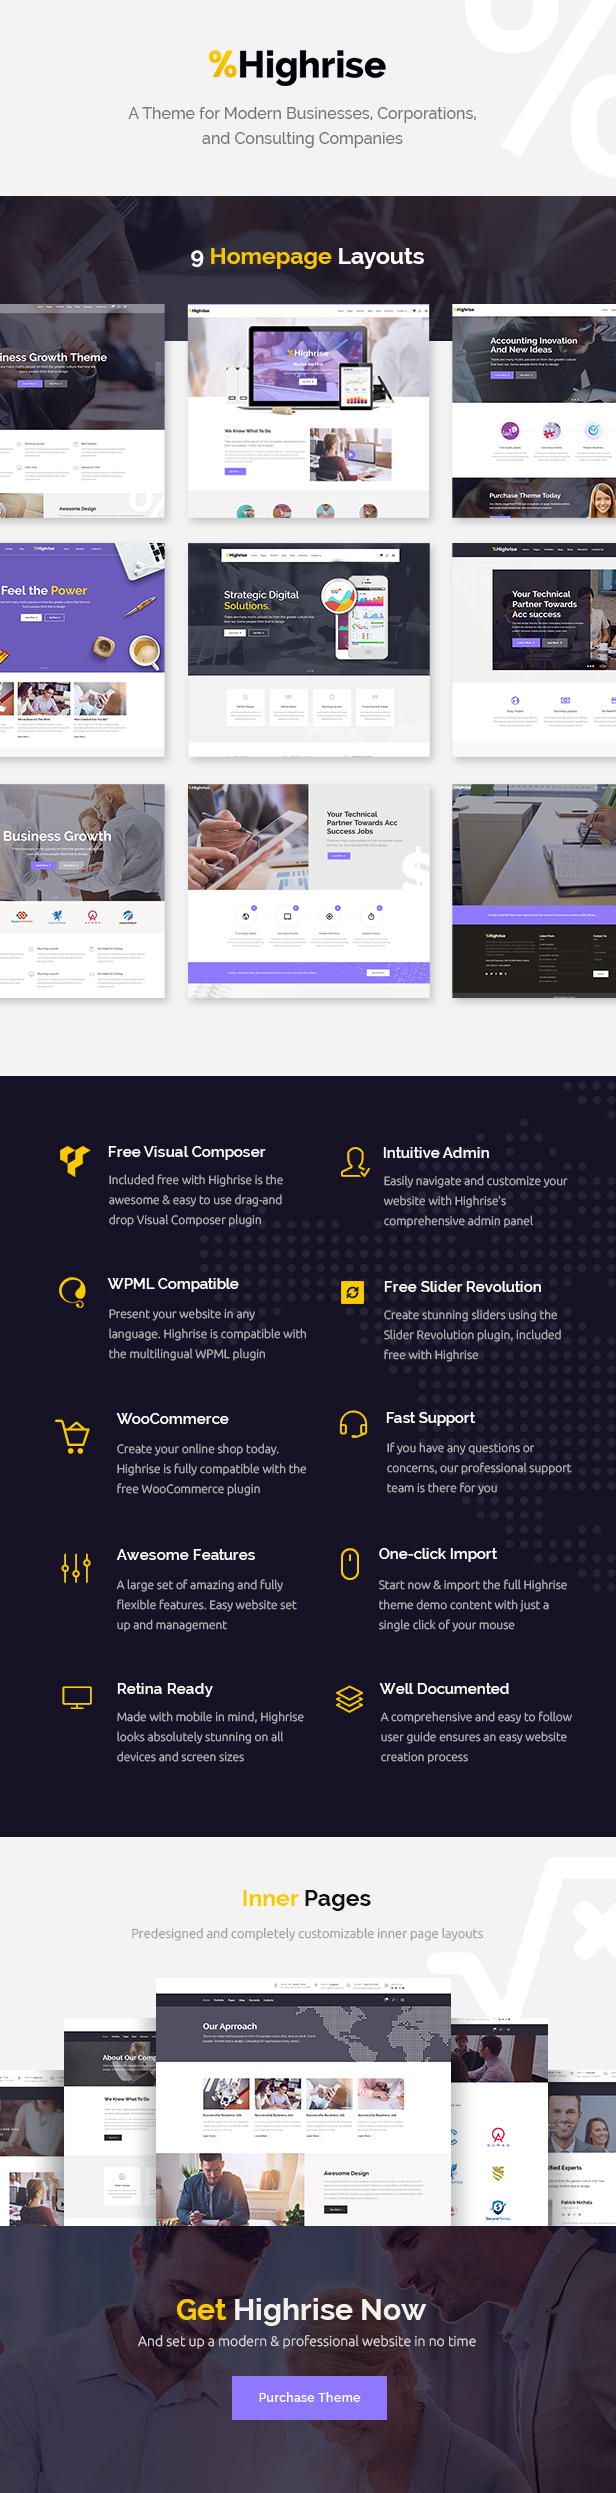 highrise2 - Highrise - A Theme for Modern Businesses, Corporations, and Consulting Companies